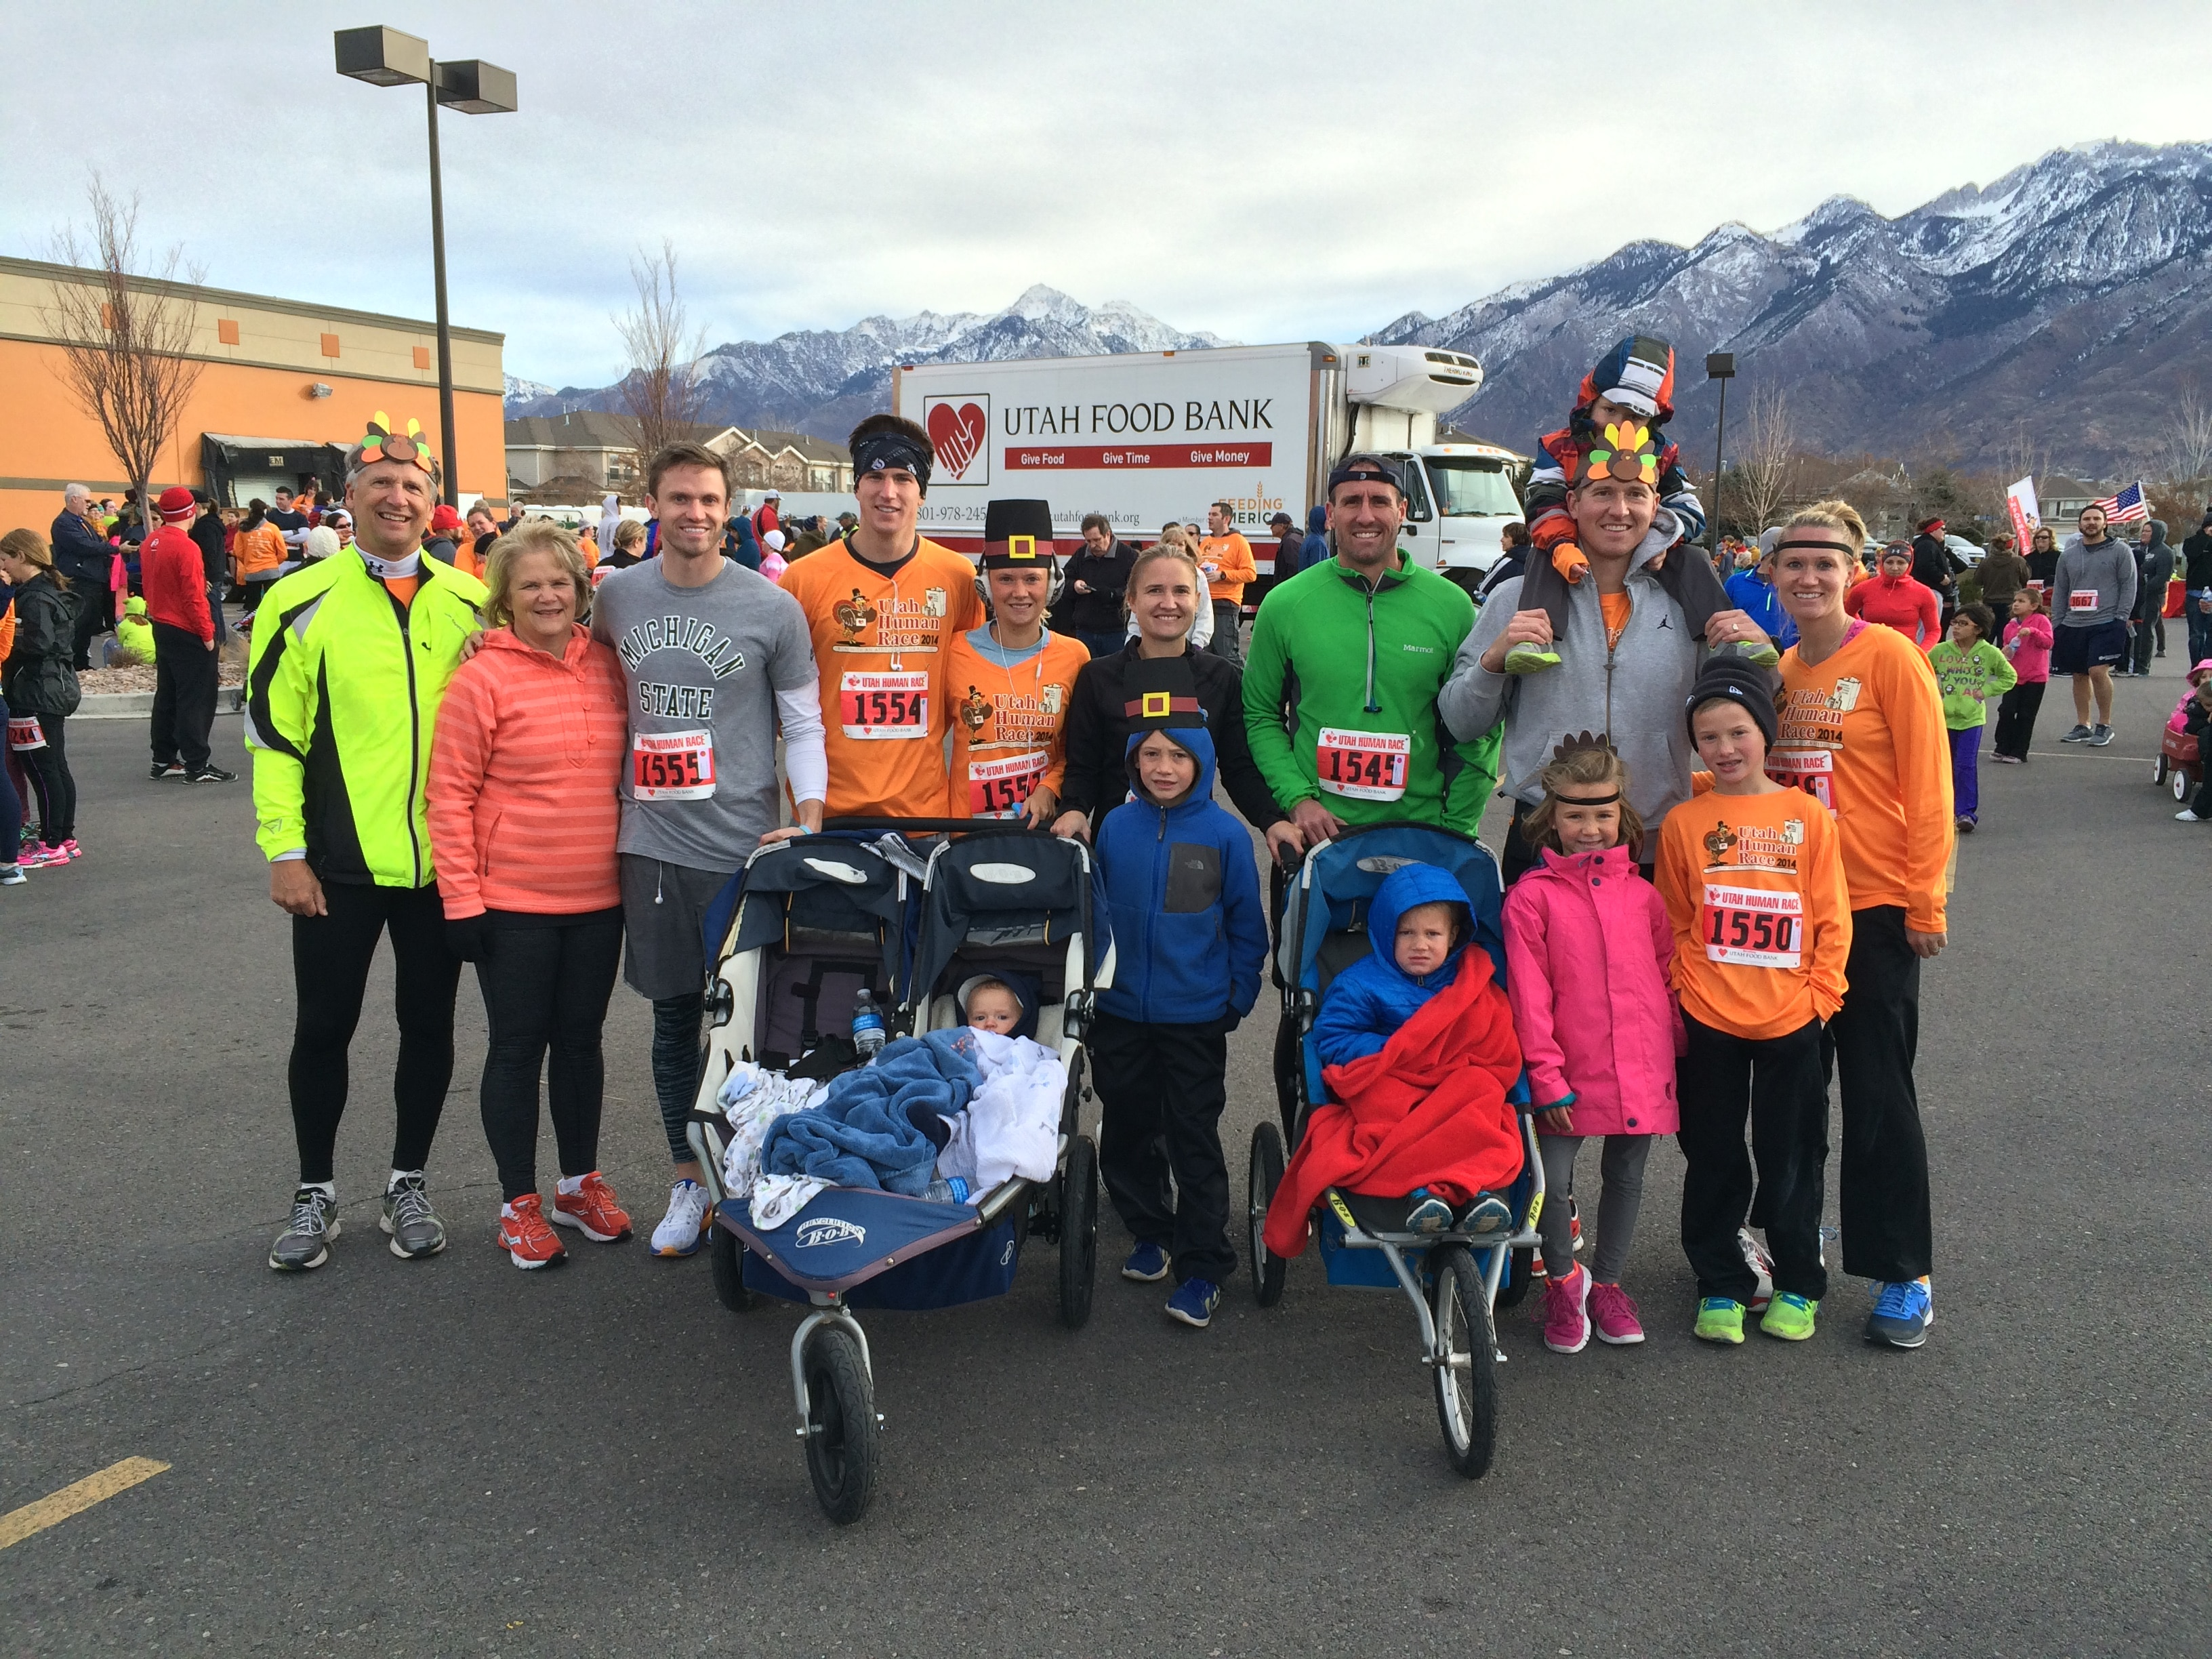 People posing wearing running clothing (Courtesy of Utah Food Bank)